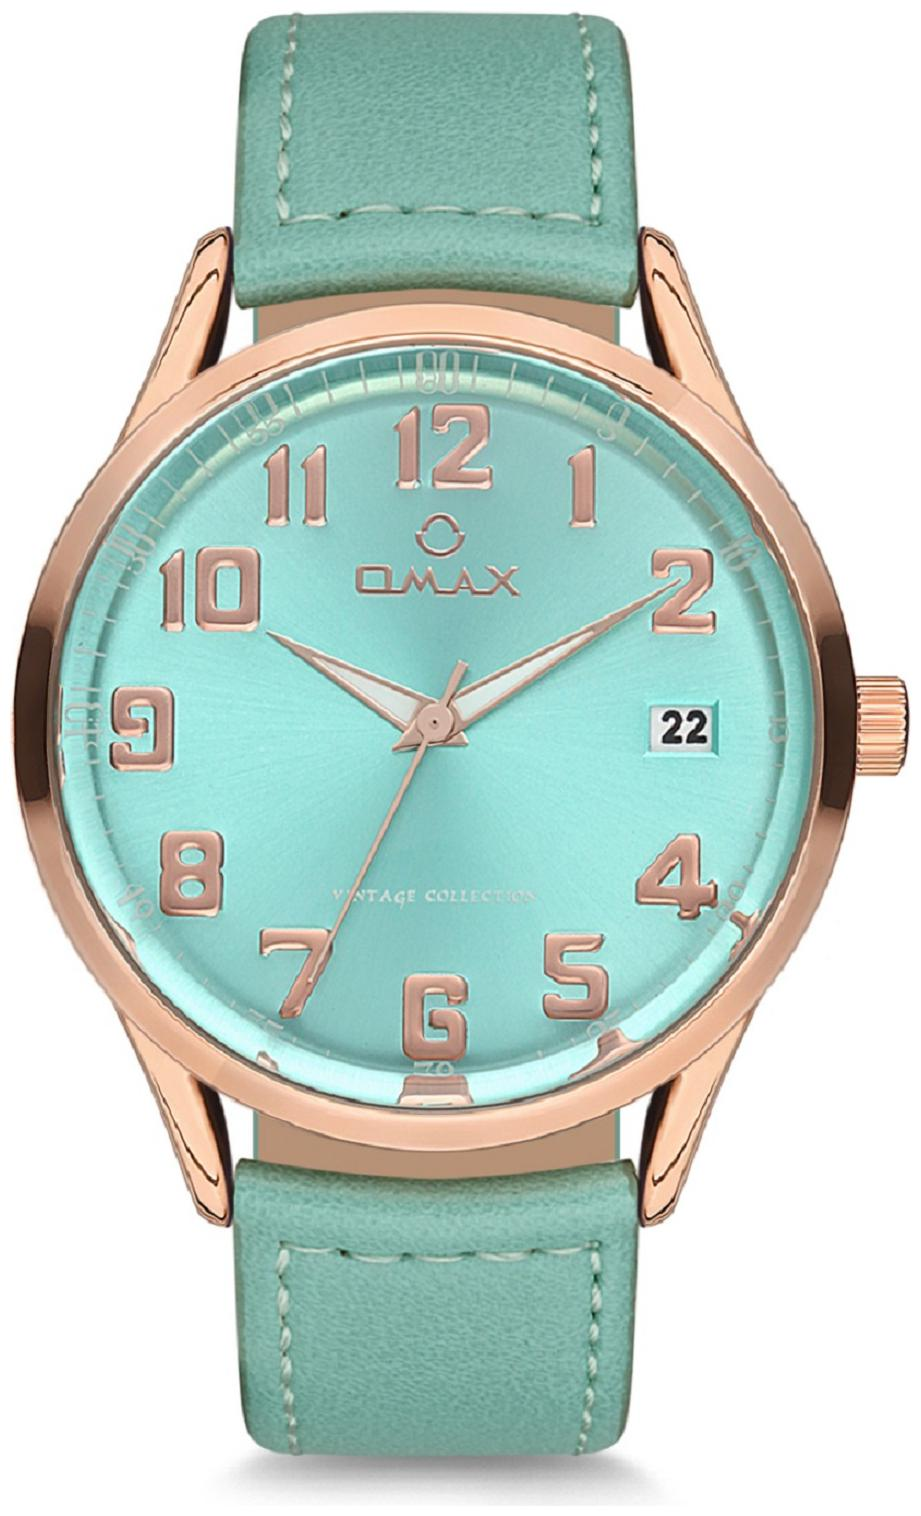 OMAX VC09RB4A Women Blue Analog Watch by Omax Watches